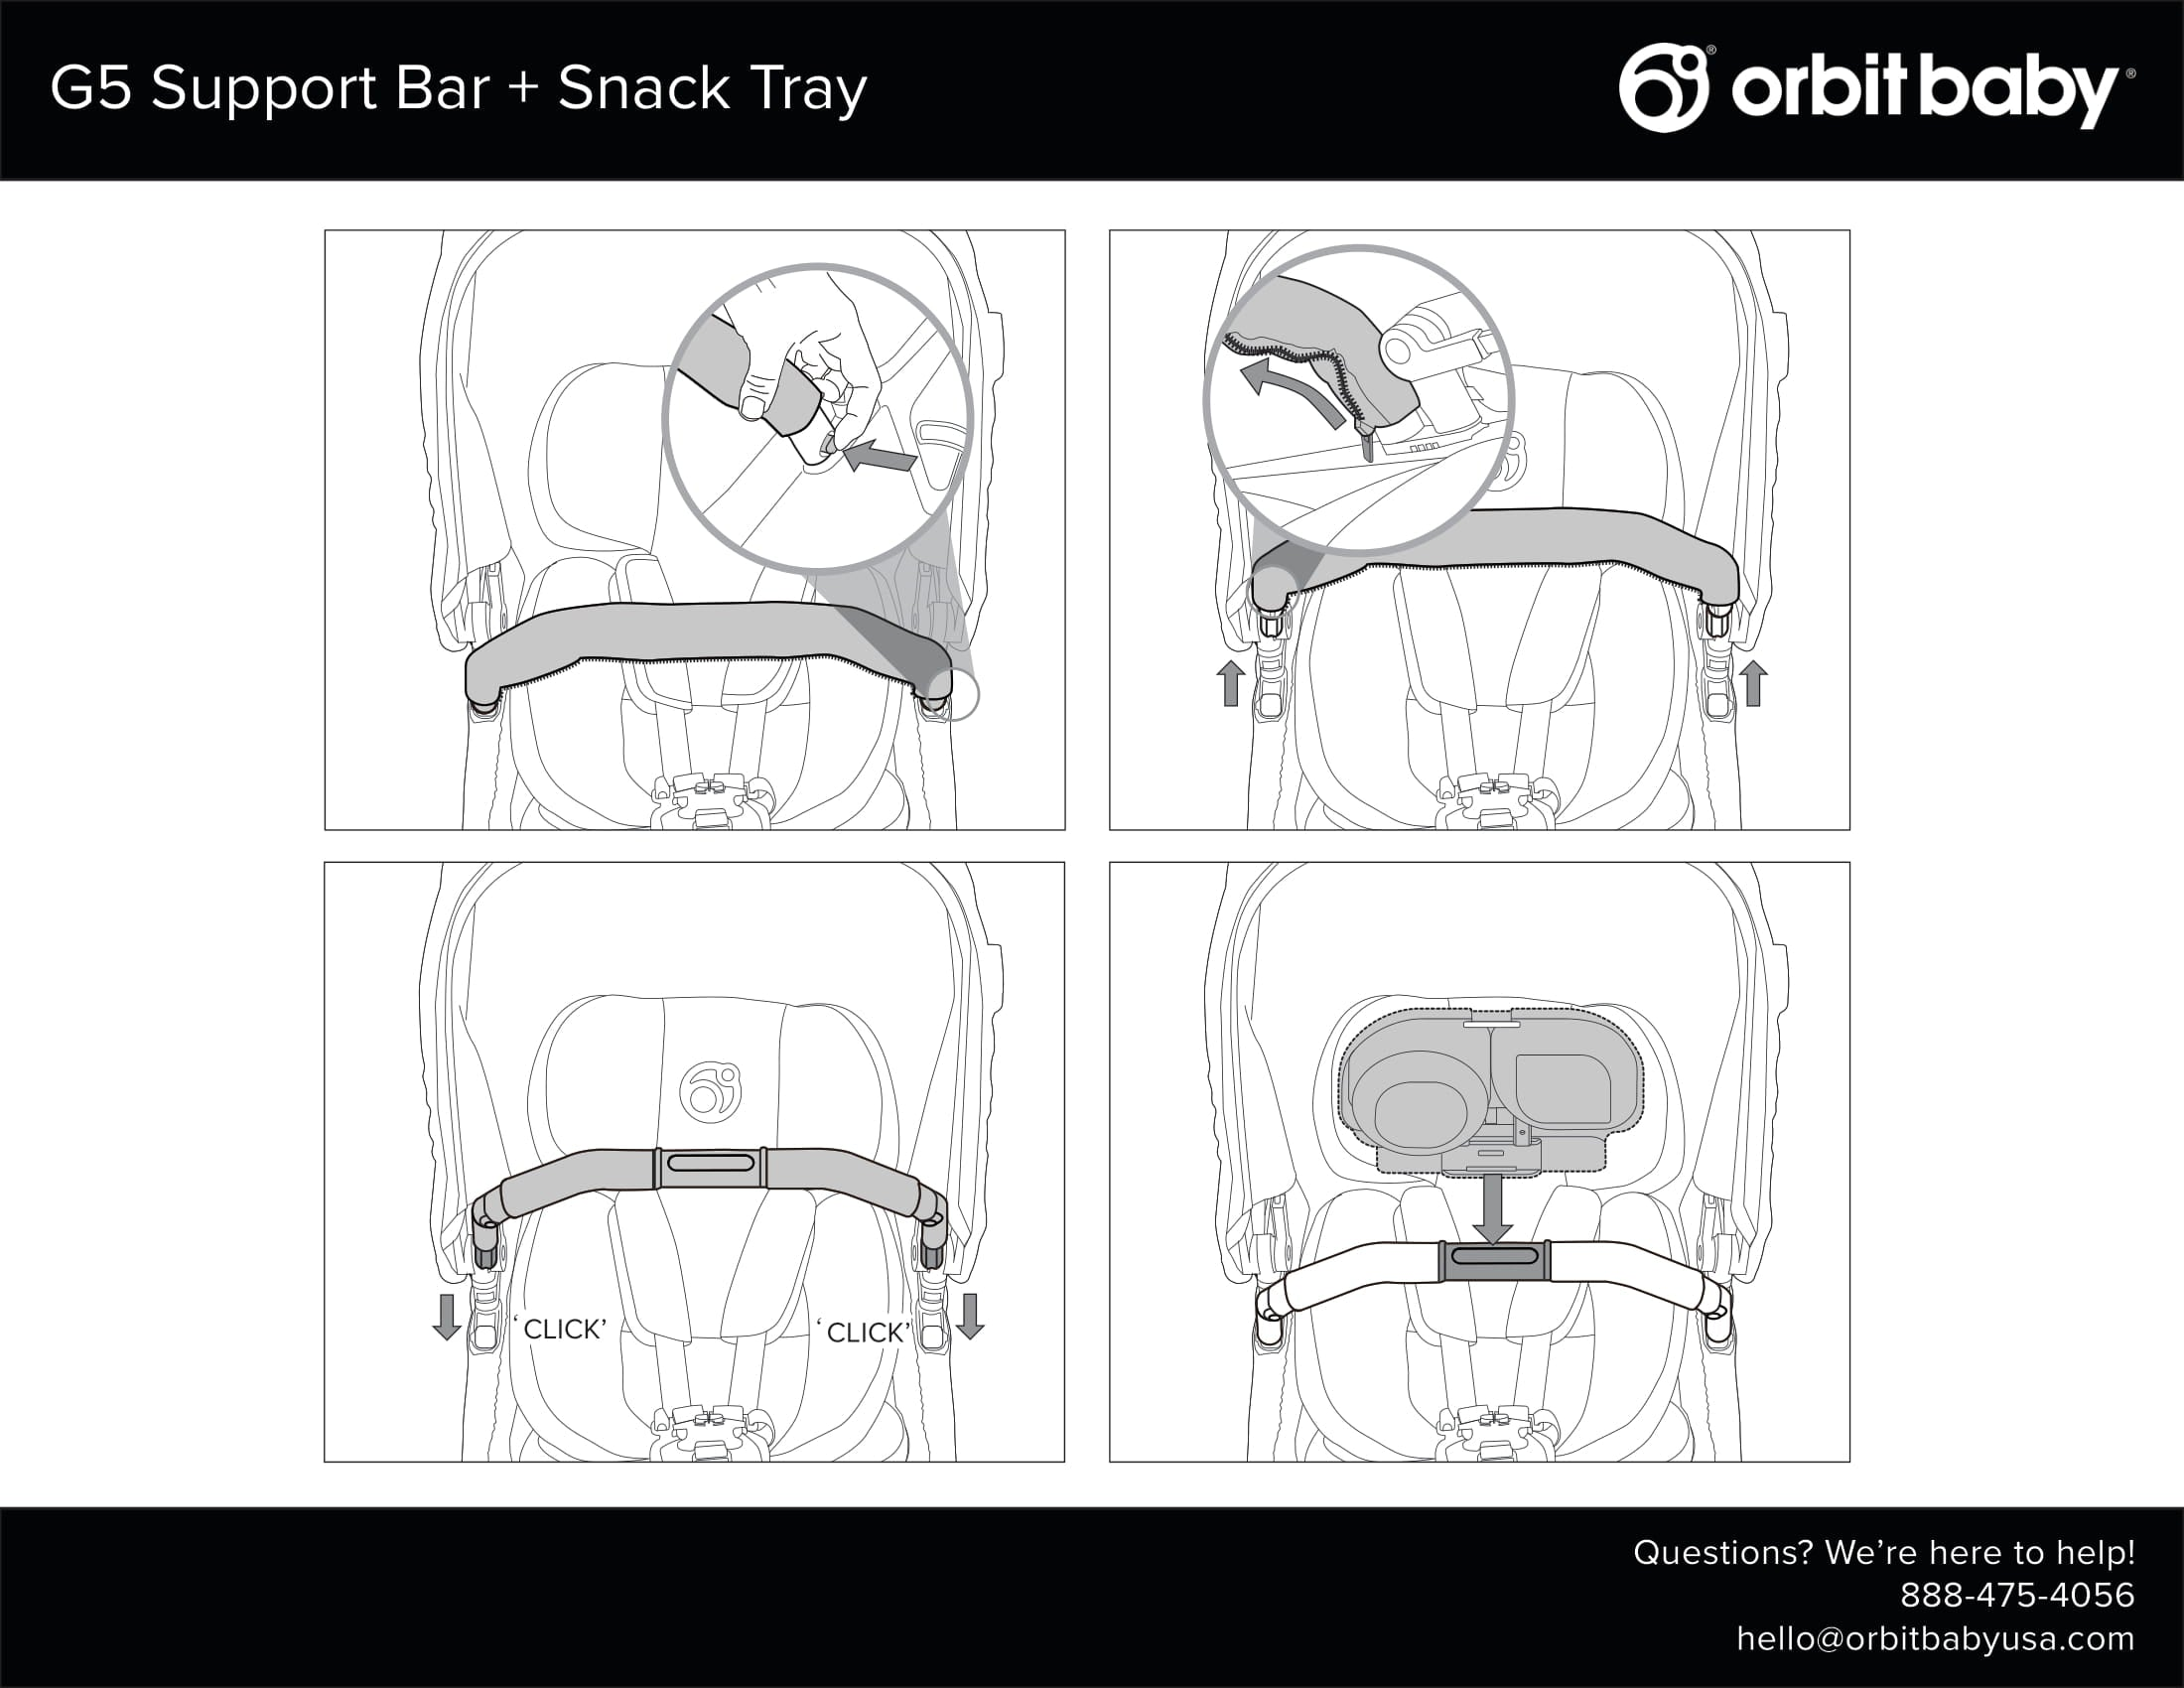 G5 Support Bar + Snack Tray Manual